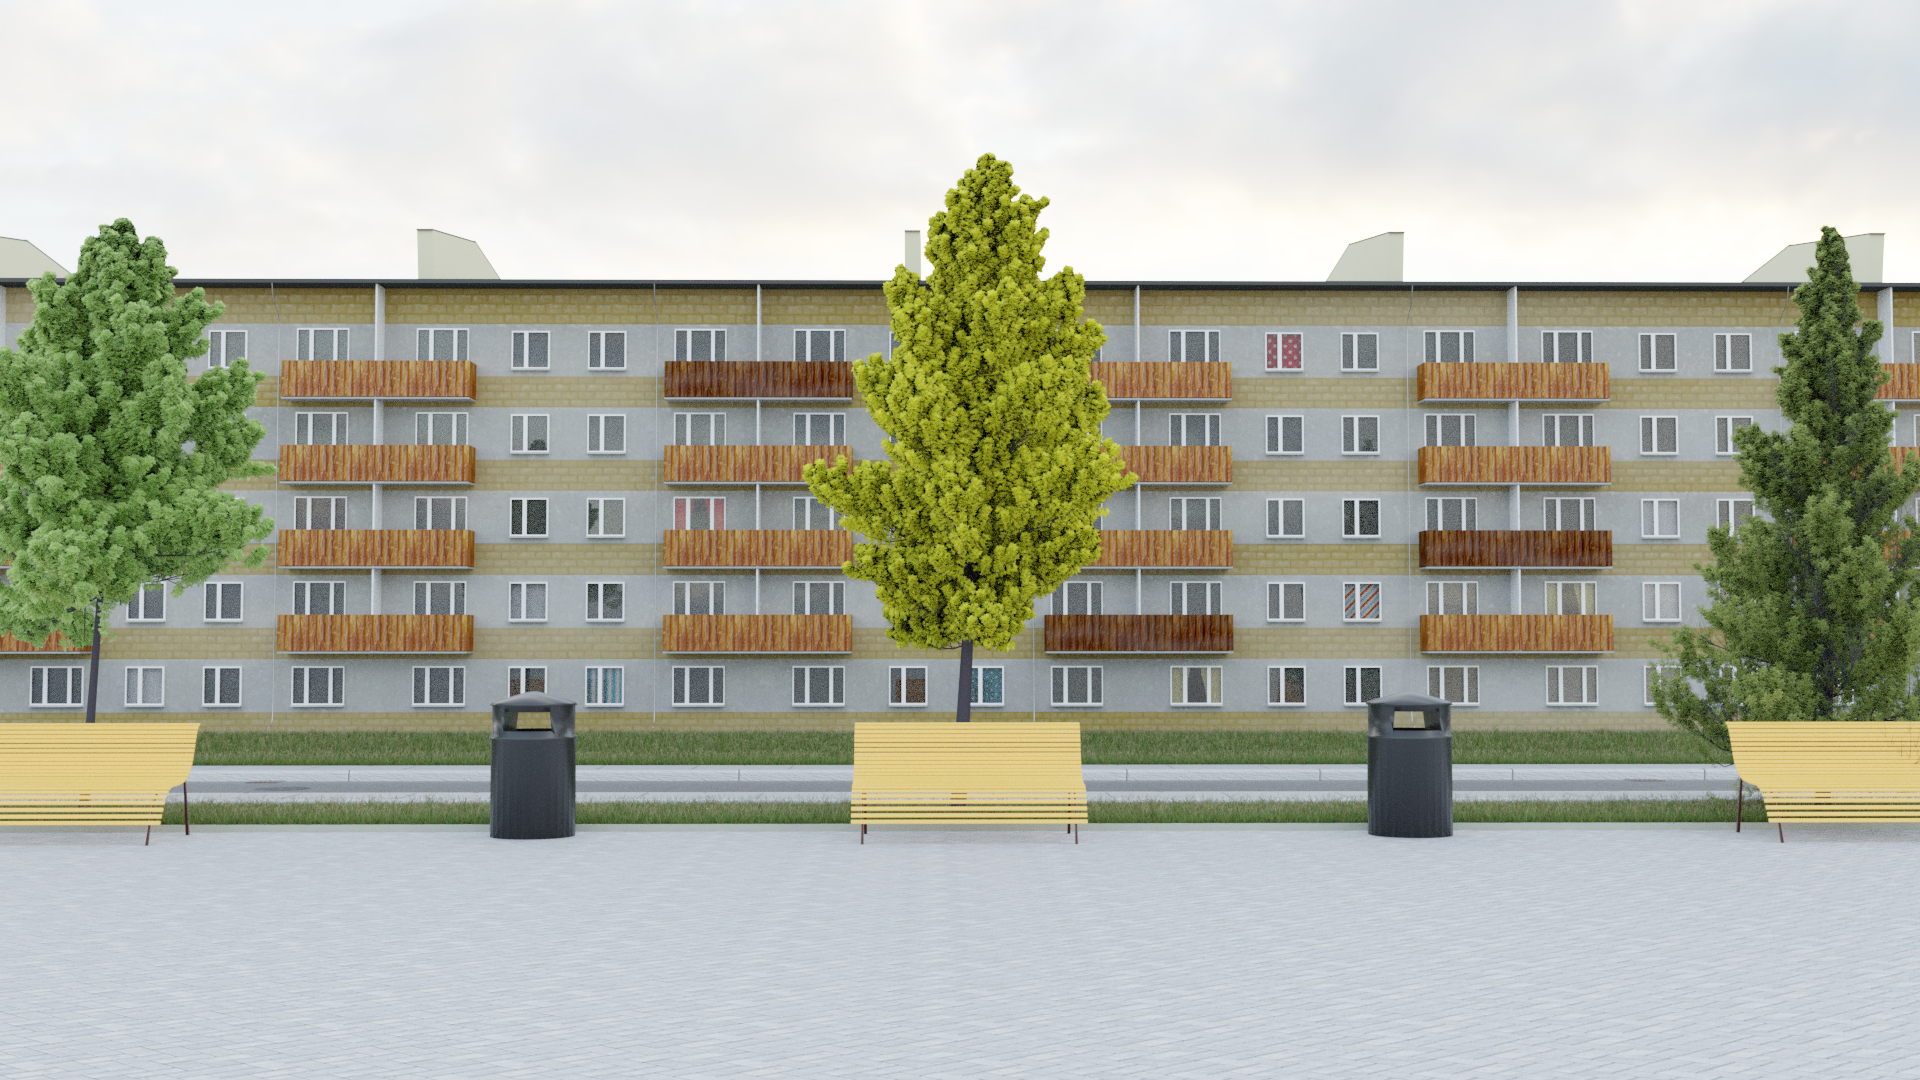 3D Soviet Apartment Block